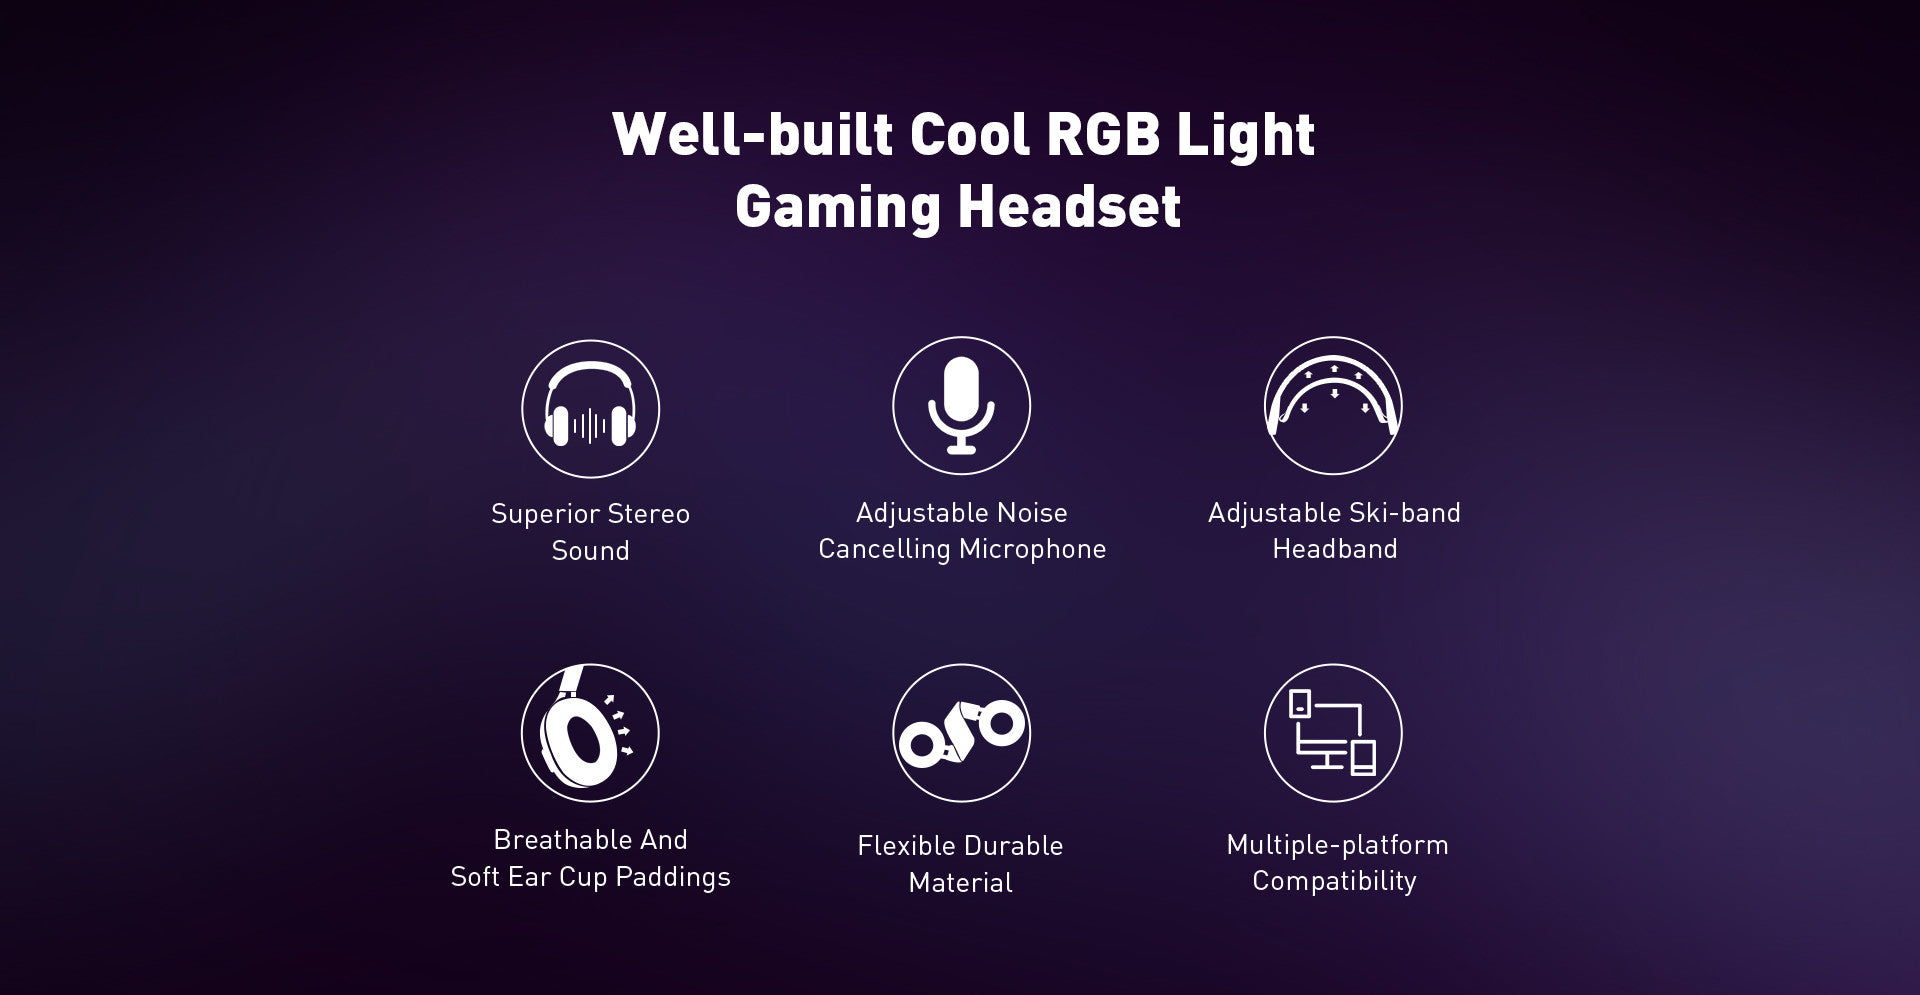 E3000 Gaming Headset is a sturdy and well-built headset with cool RGB light for PC video gamers.